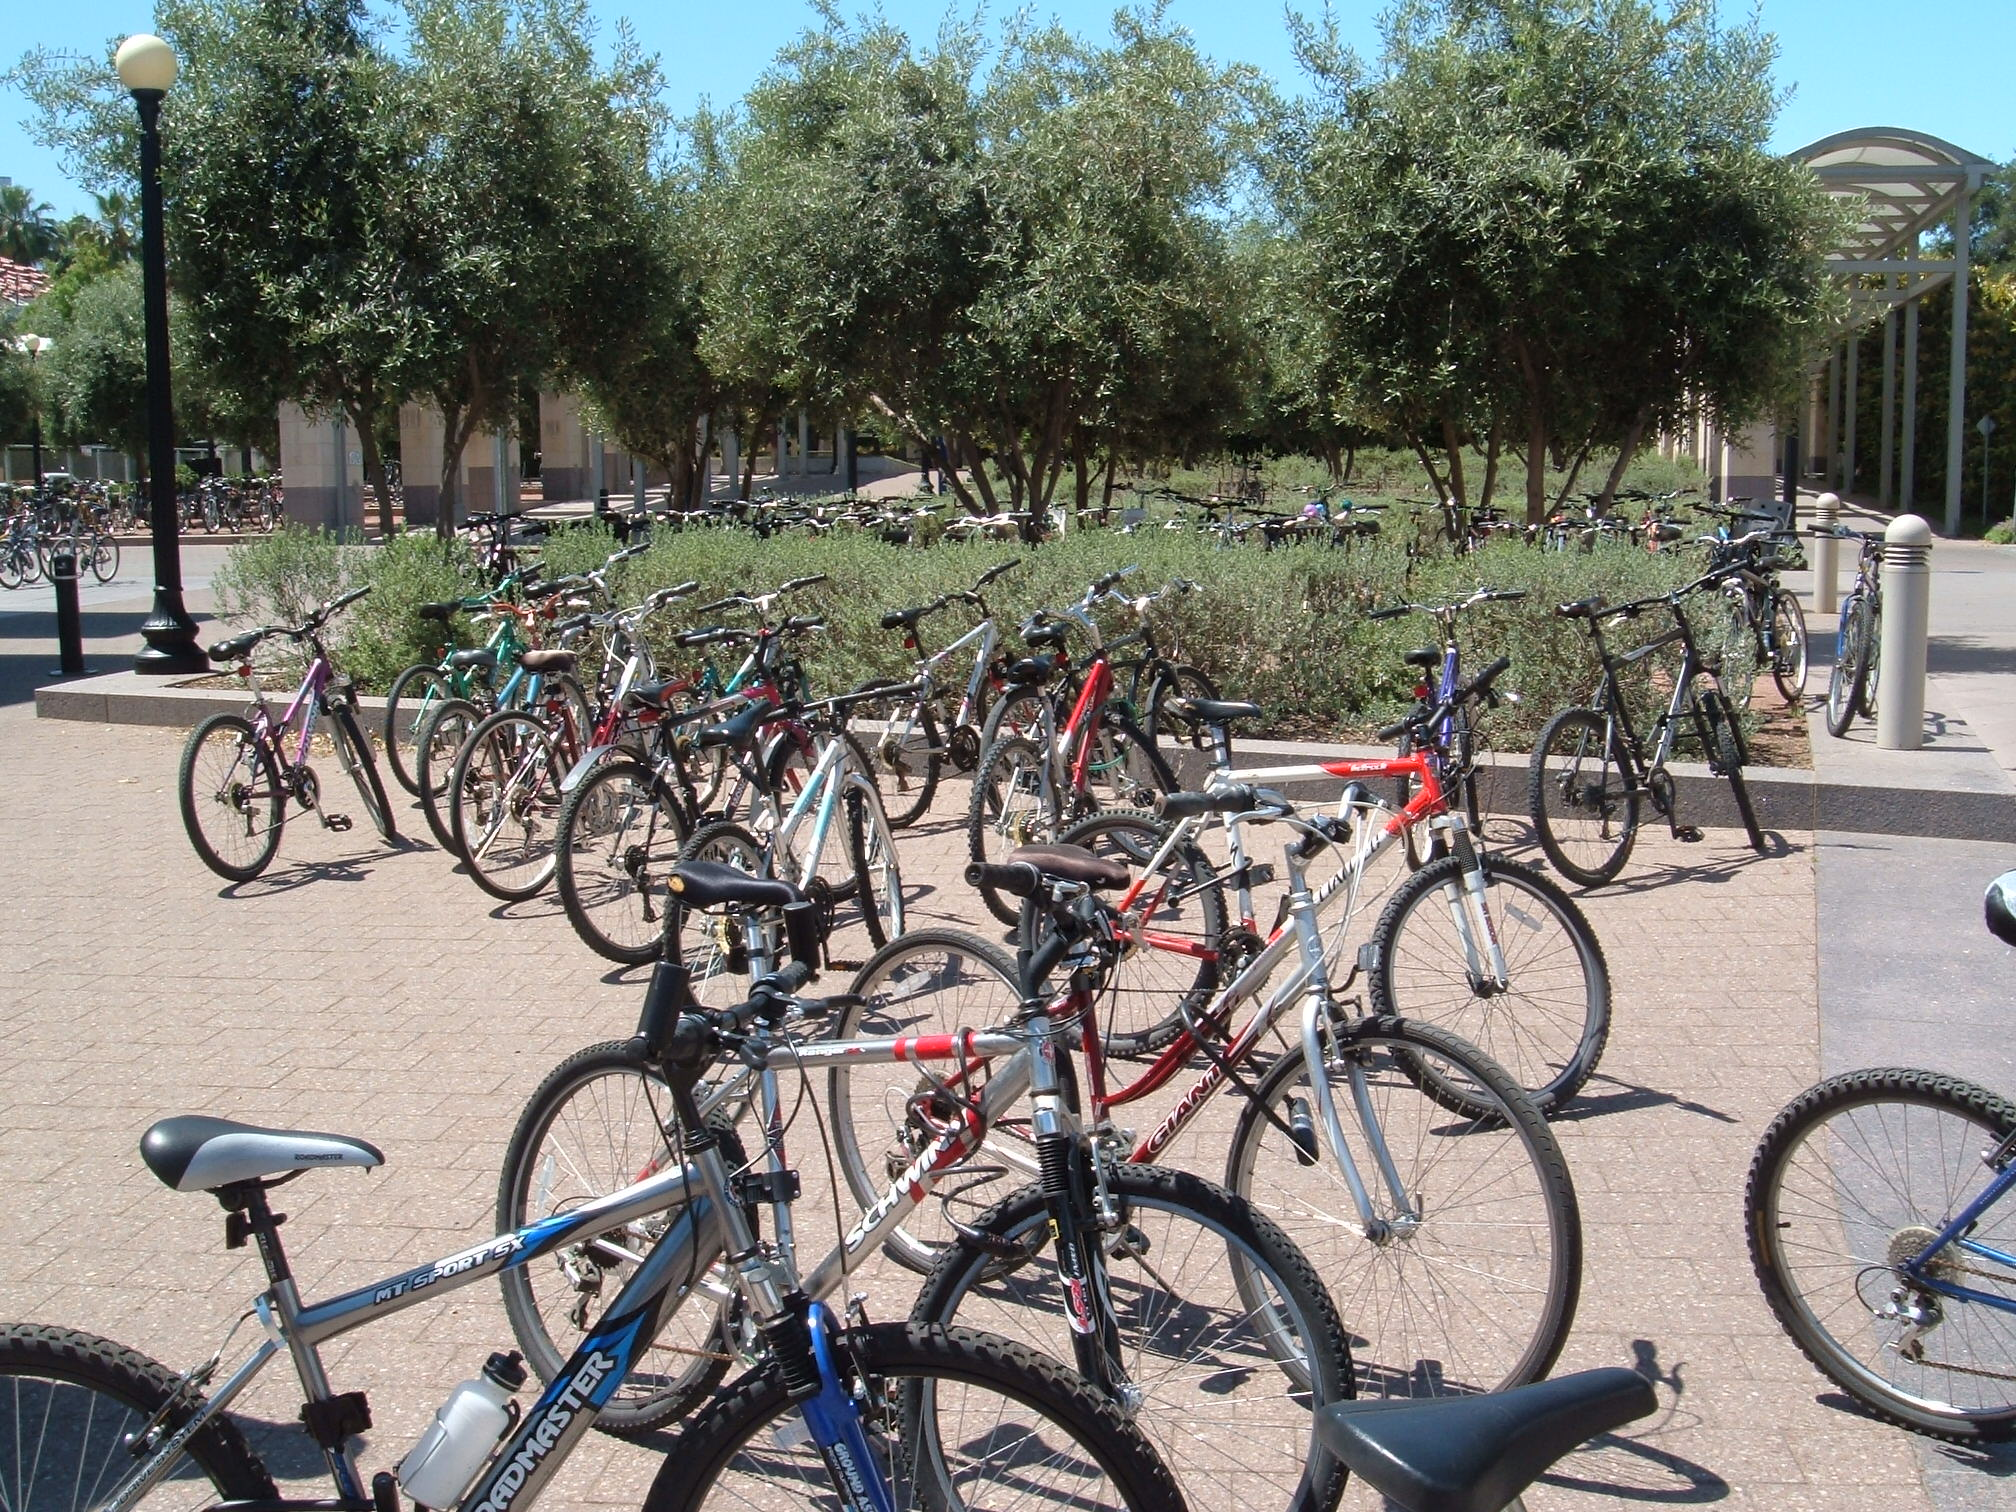 Many students use bicycles to get around the large campus.